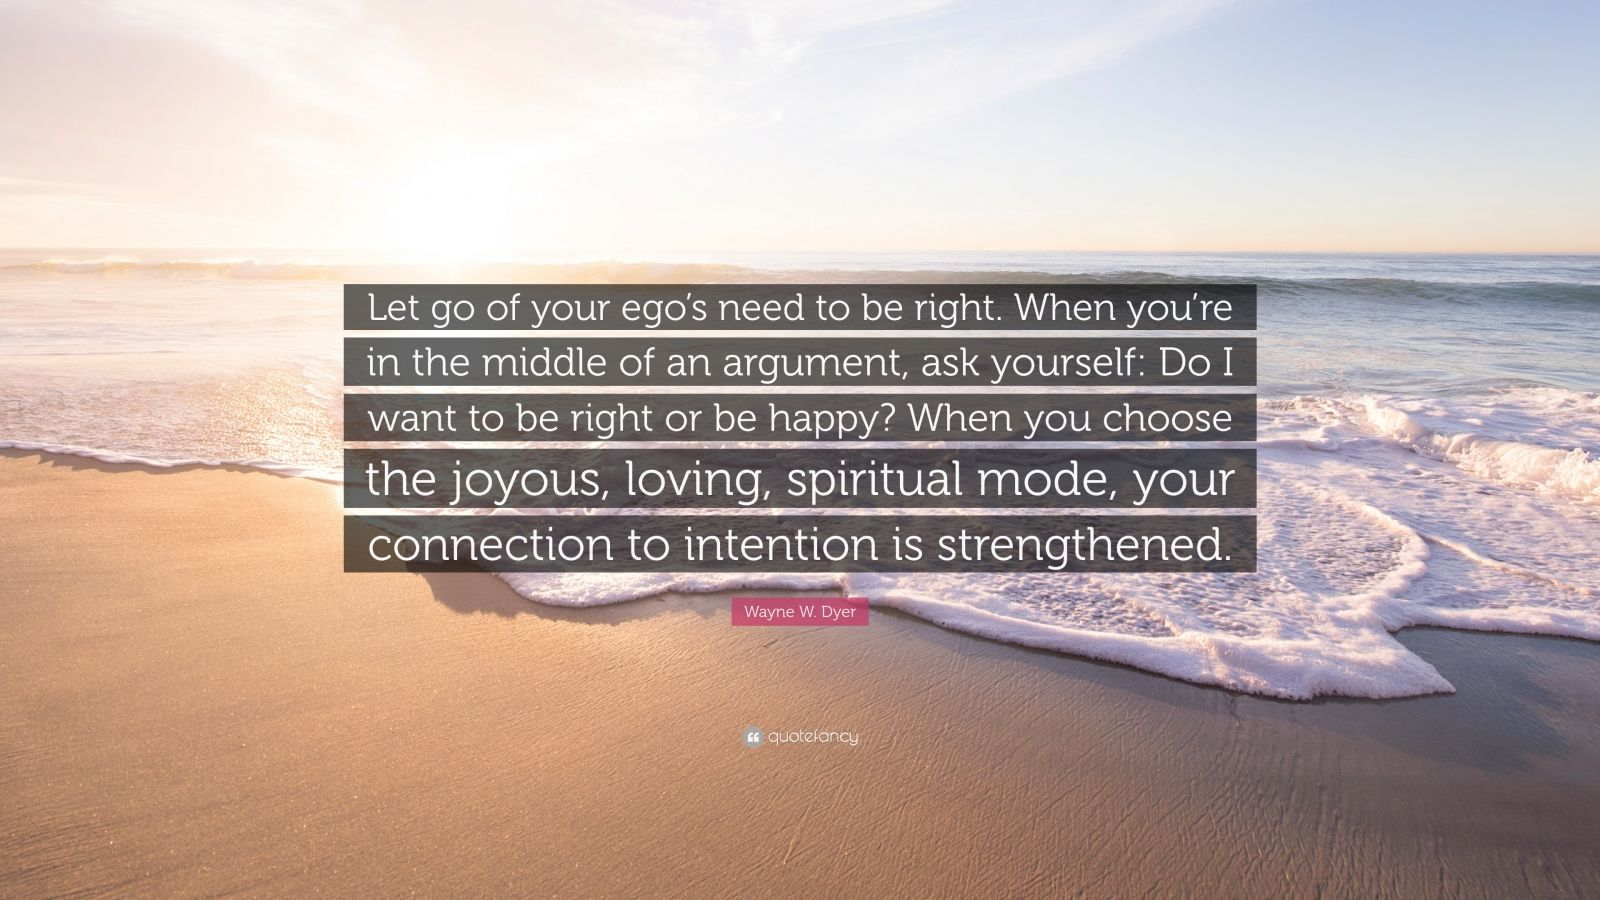 "Wayne W. Dyer Quote: ""Let go of your ego's need to be right. When you're in the middle of an argument, ask yourself: Do I want to be right or be happy? When you choose the joyous, loving, spiritual mode, your connection to intention is strengthened."""